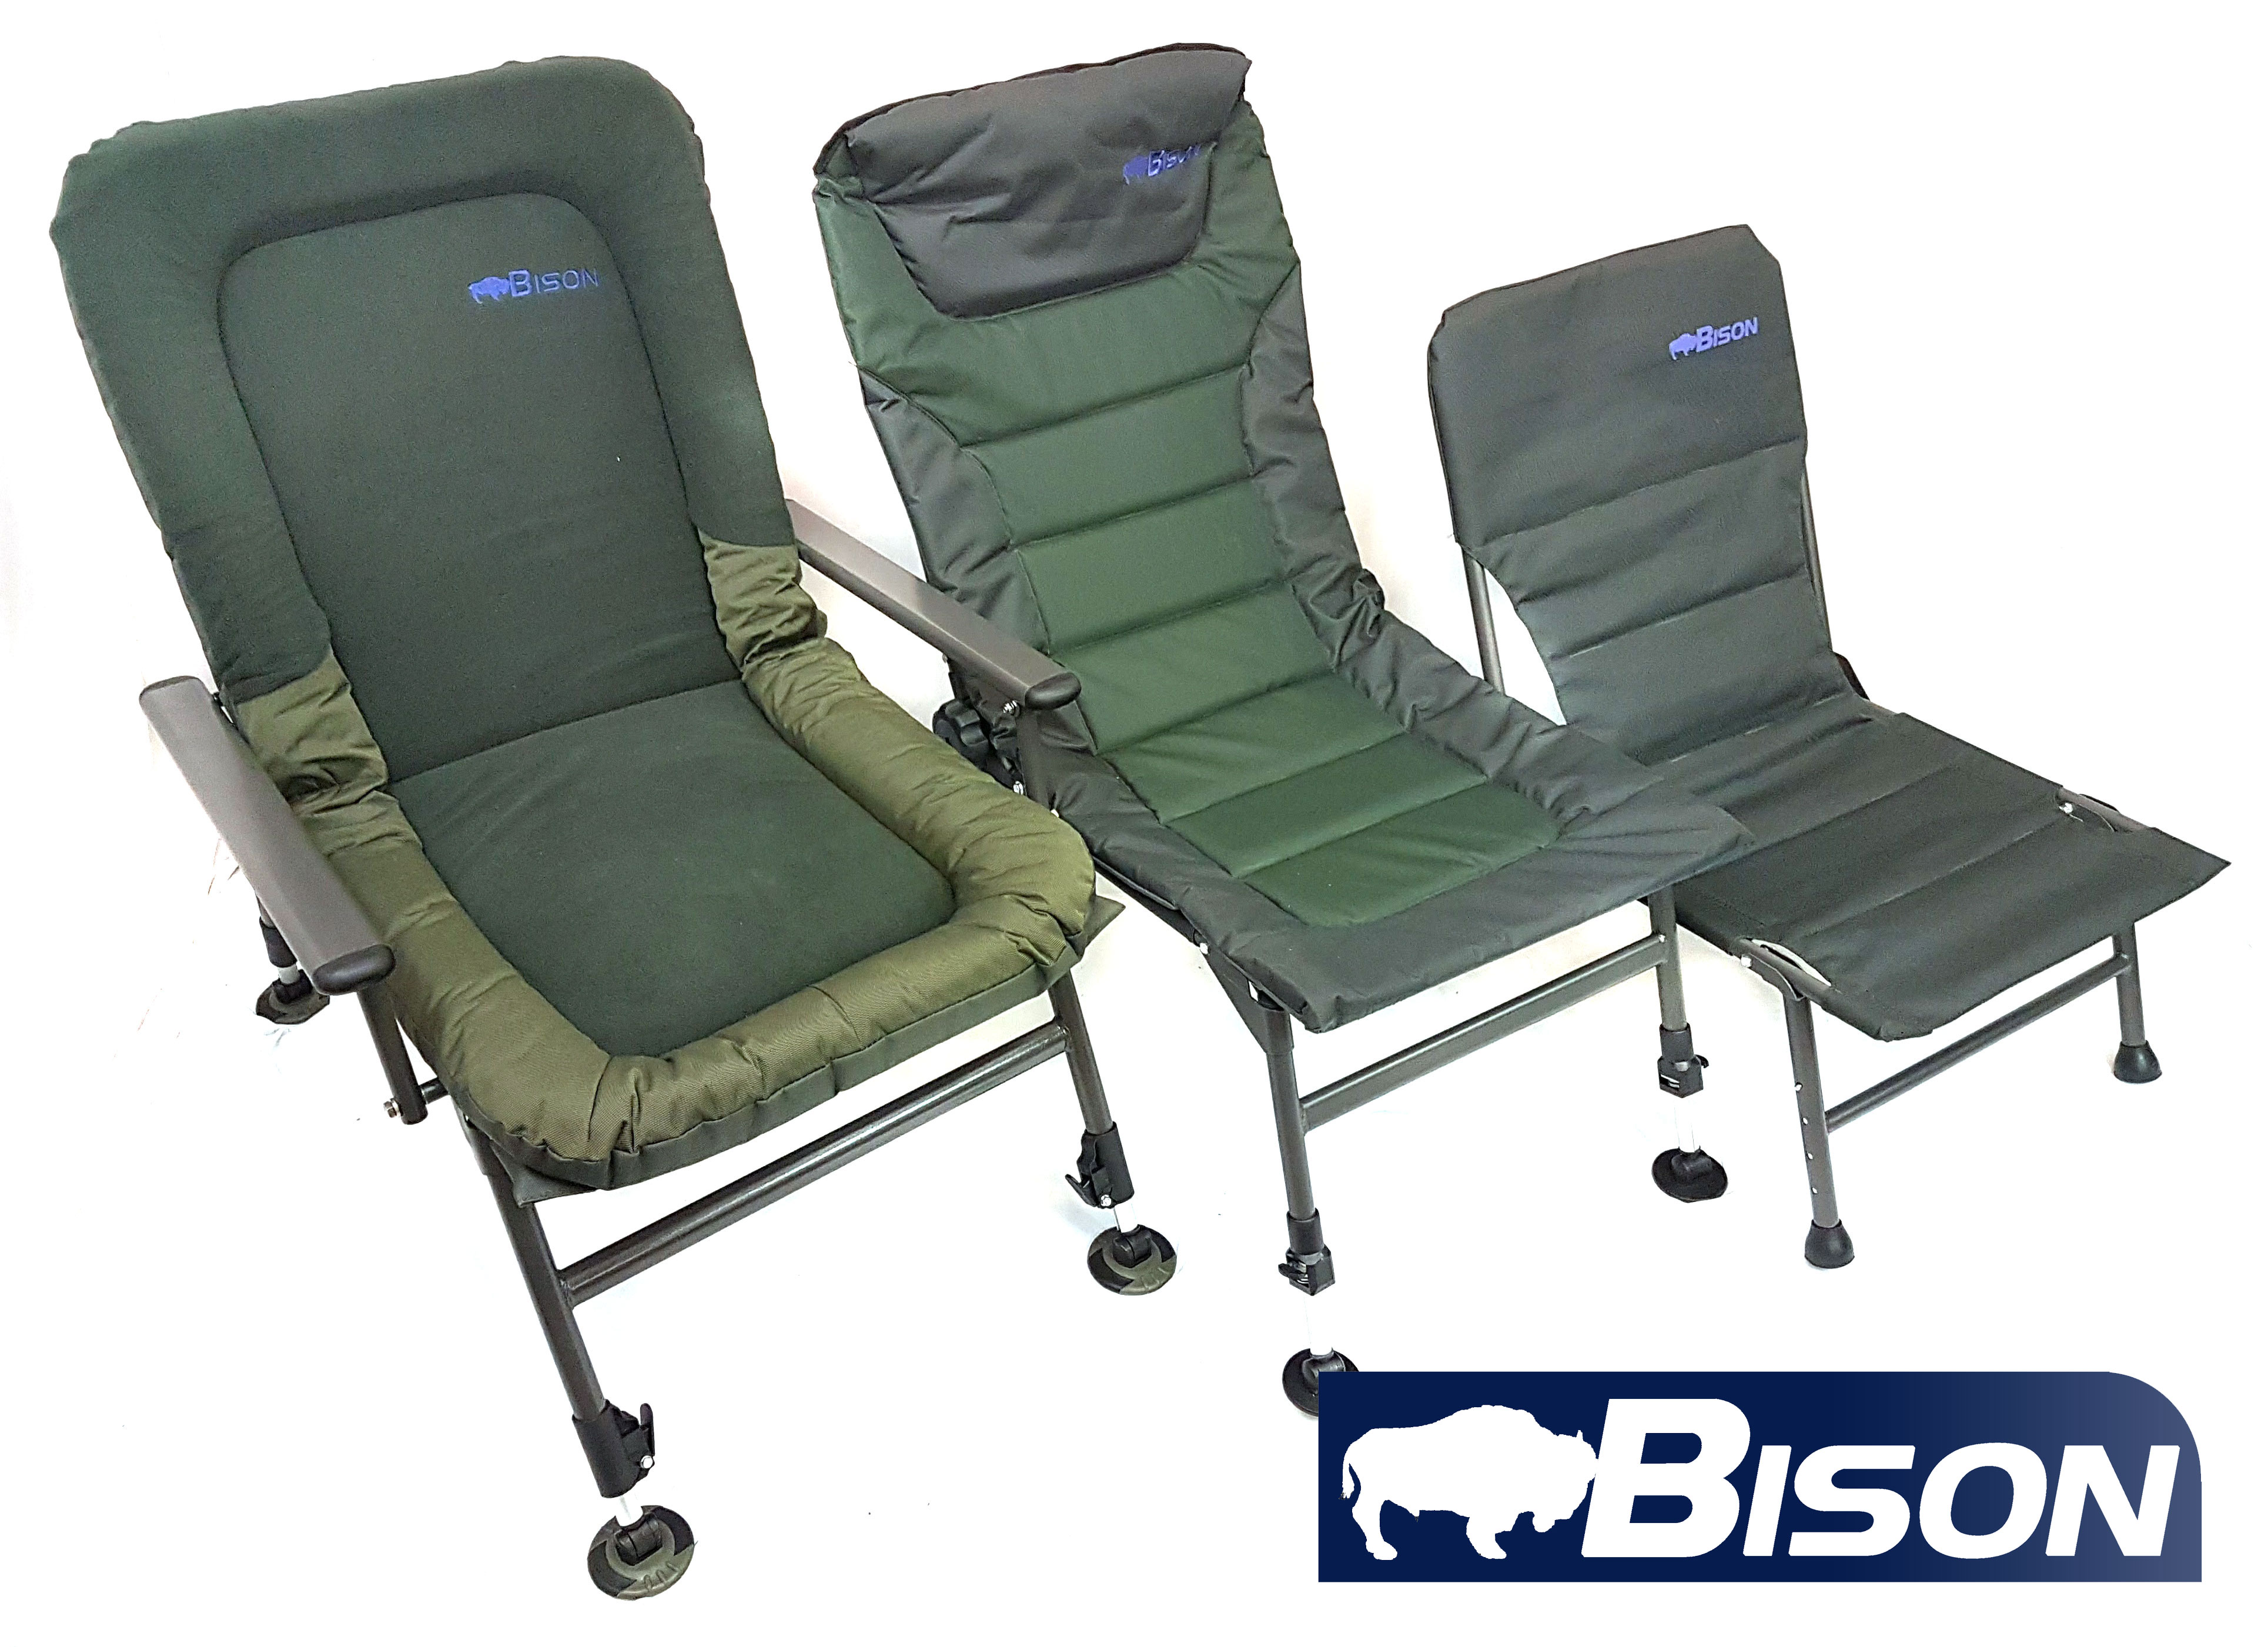 fishing chair uk kids table and chairs kmart bison carp ebay